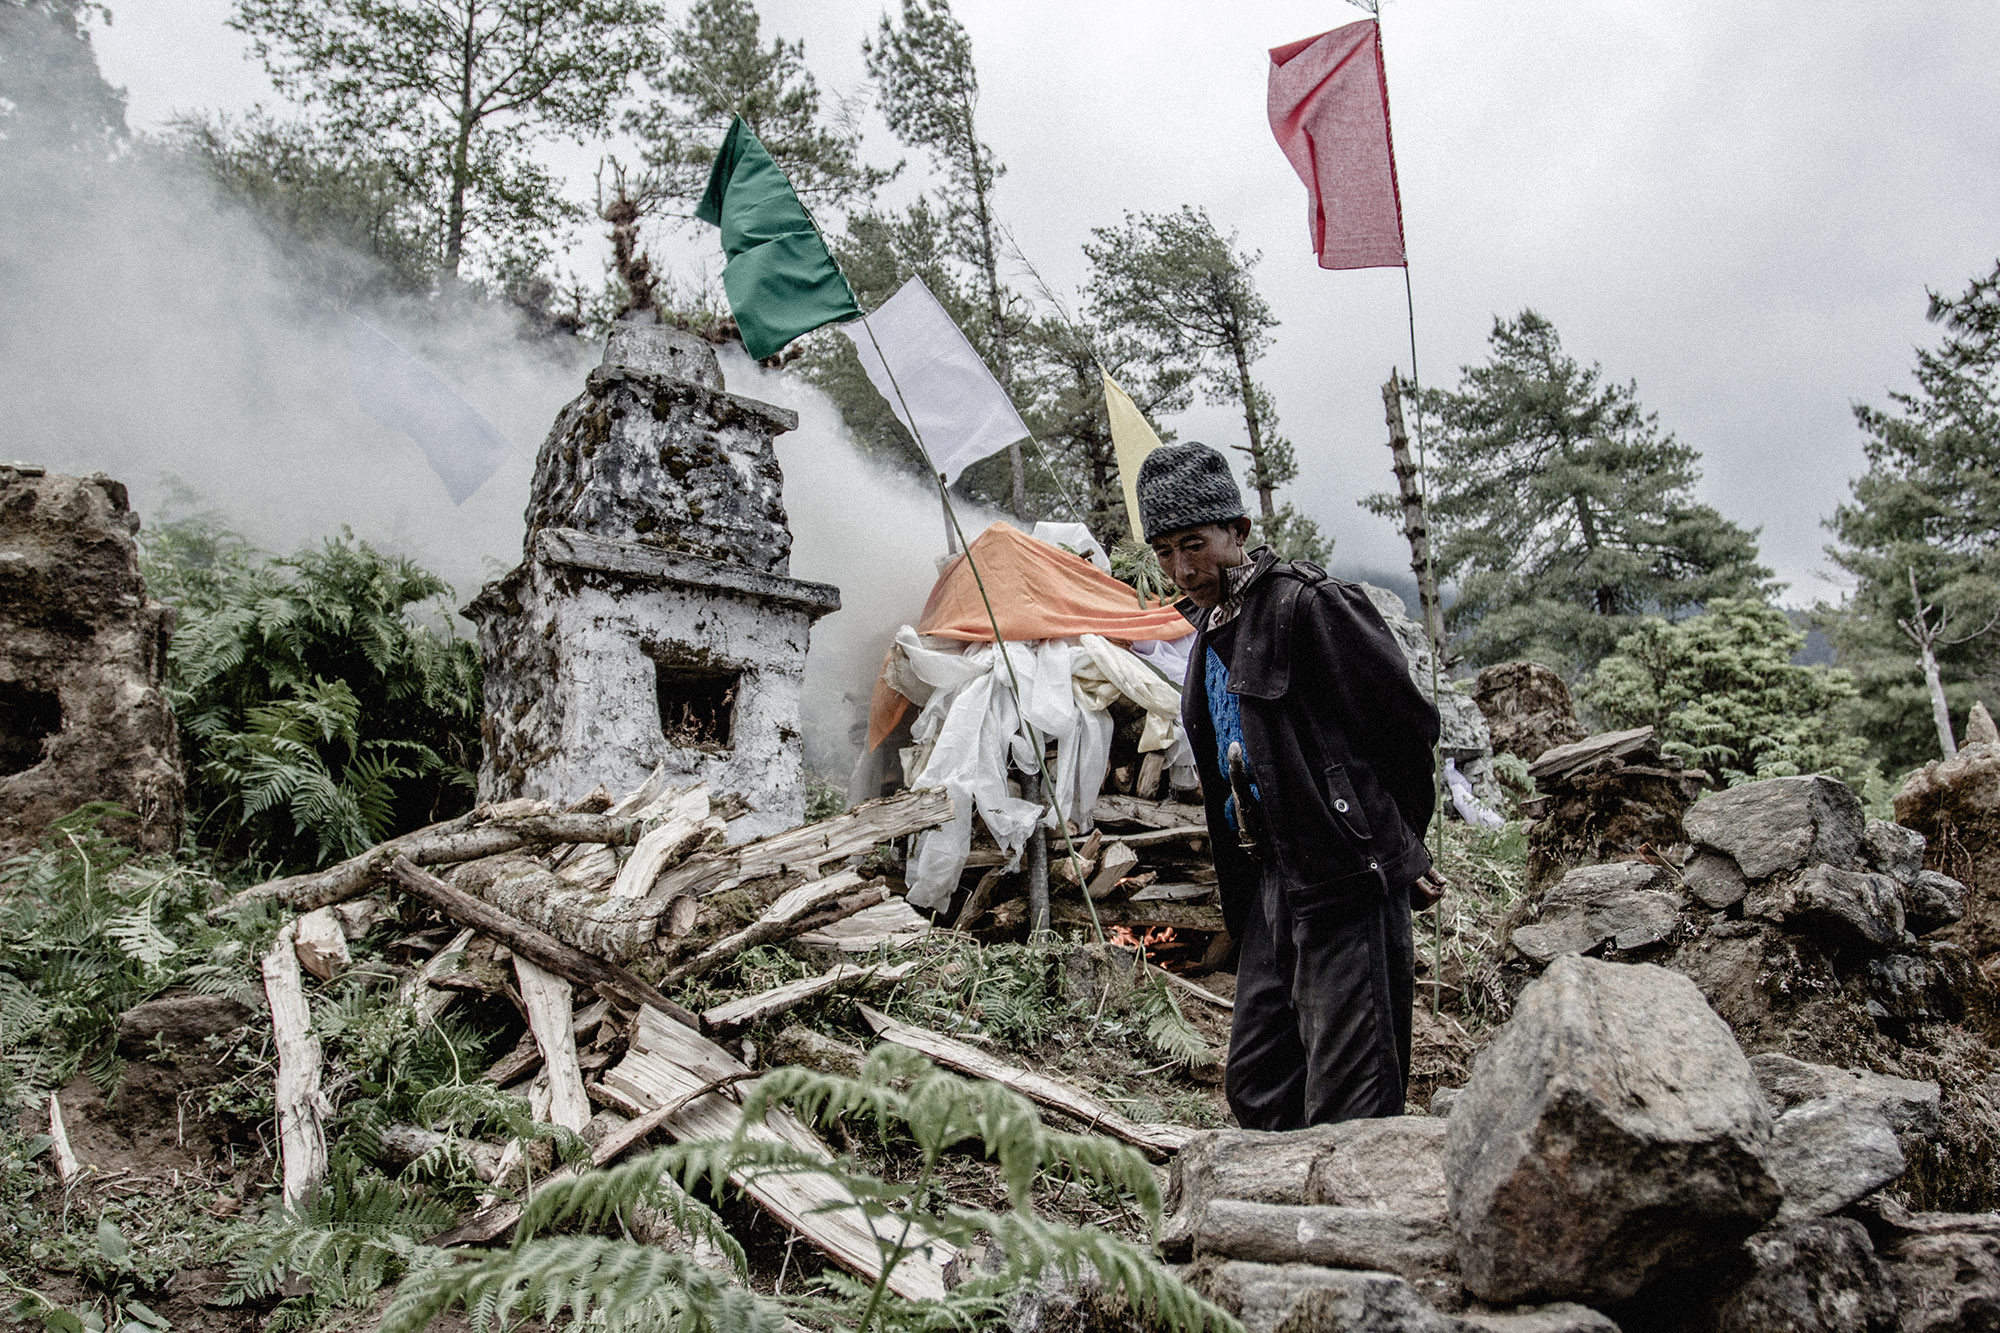 Buddhist funeral in rural Nepal